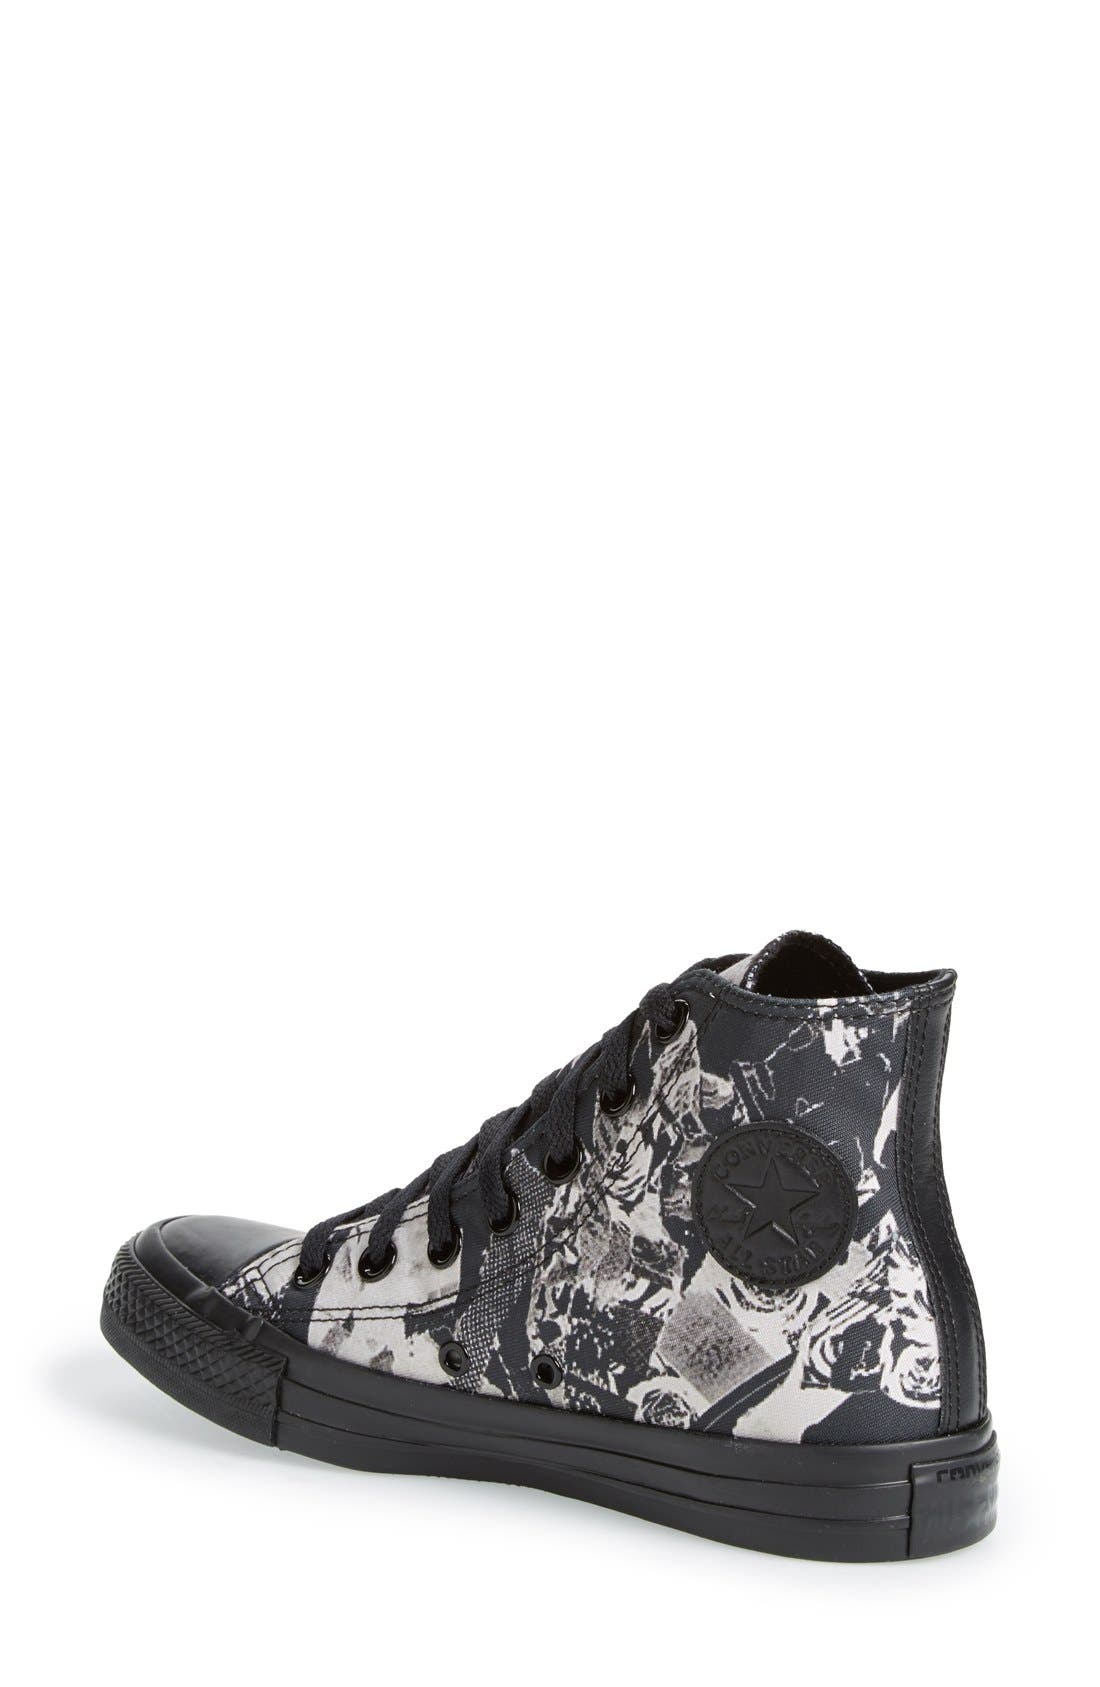 Alternate Image 2  - Converse Chuck Taylor® All Star® Print High Top Sneaker (Women)